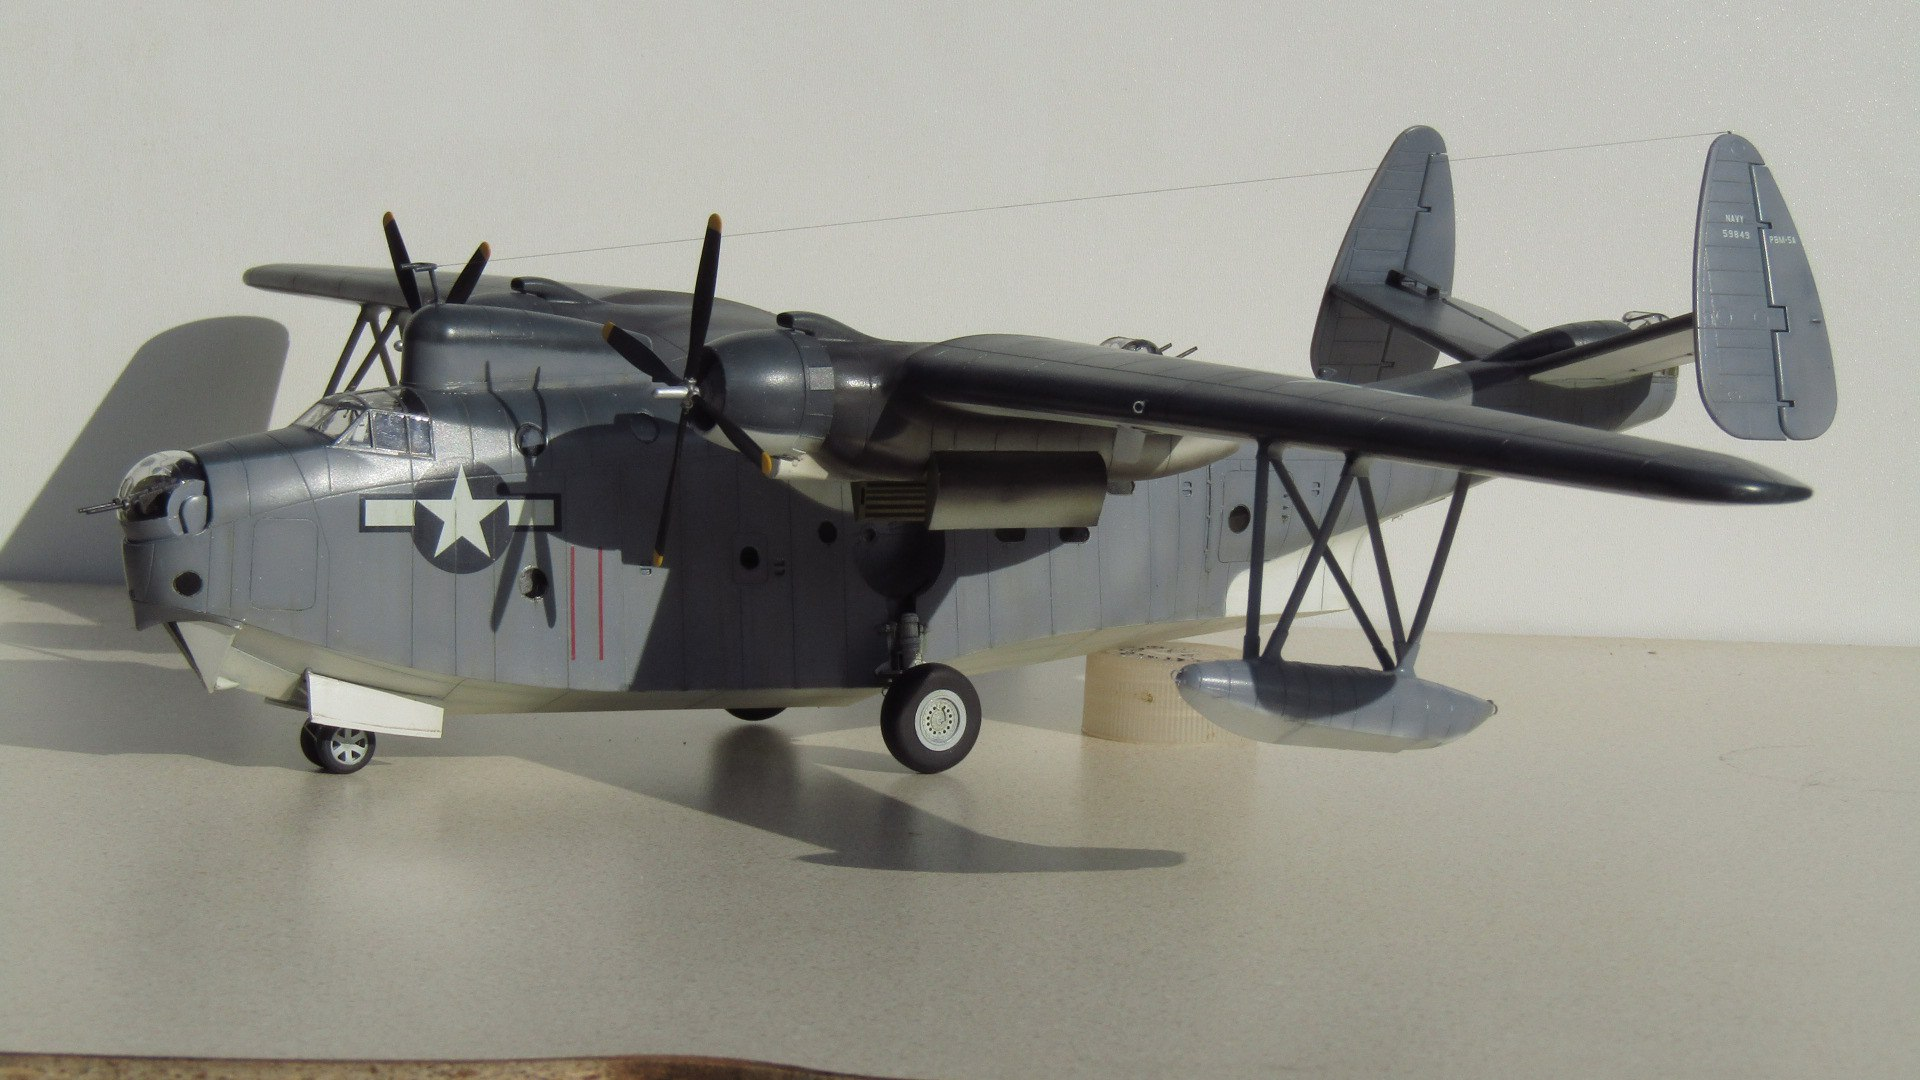 PBM-5 A MARINER 1/72 (MINICRAFT) - Страница 2 V-dGdLvPOB4